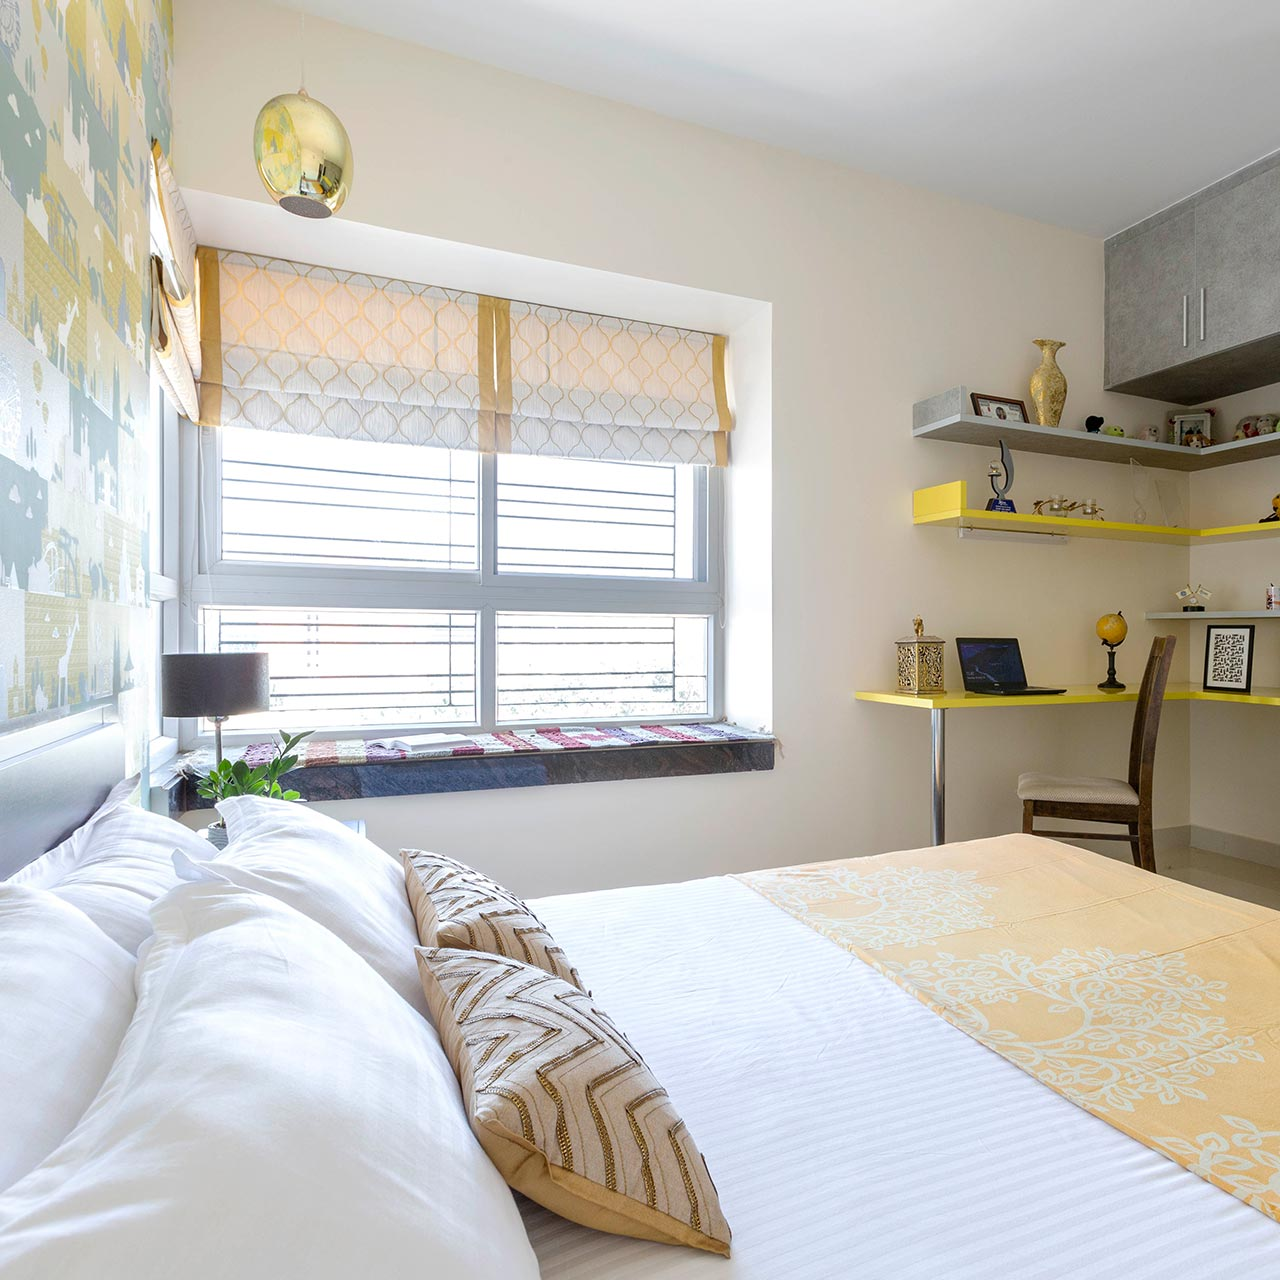 5 Ideas To Make More Space In Small Bedroom